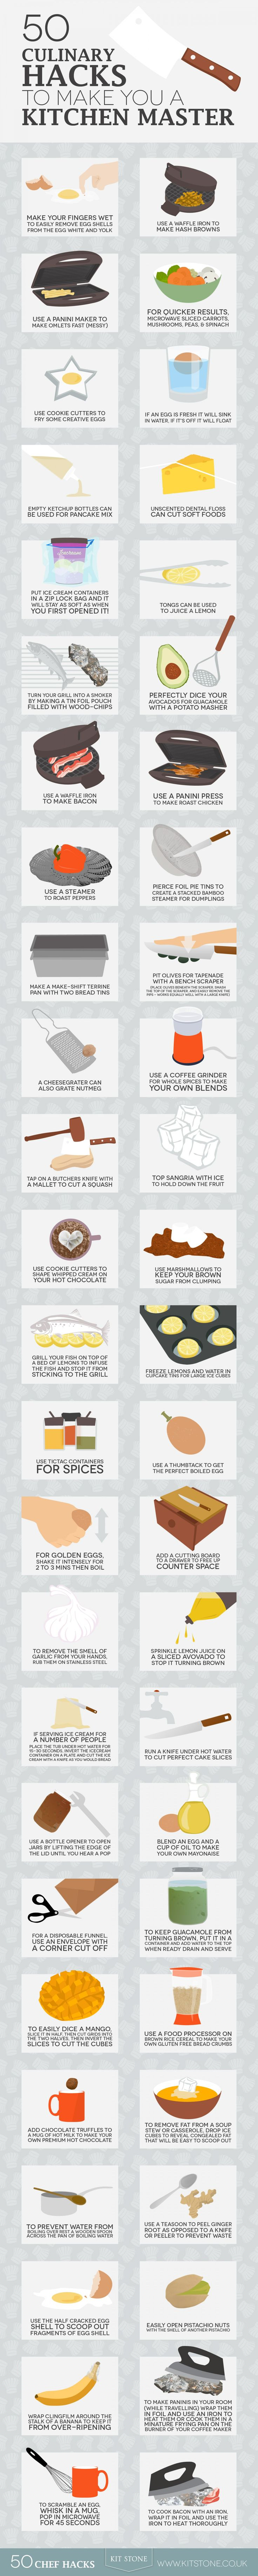 50 cooking kitchen culinary hacks infographic